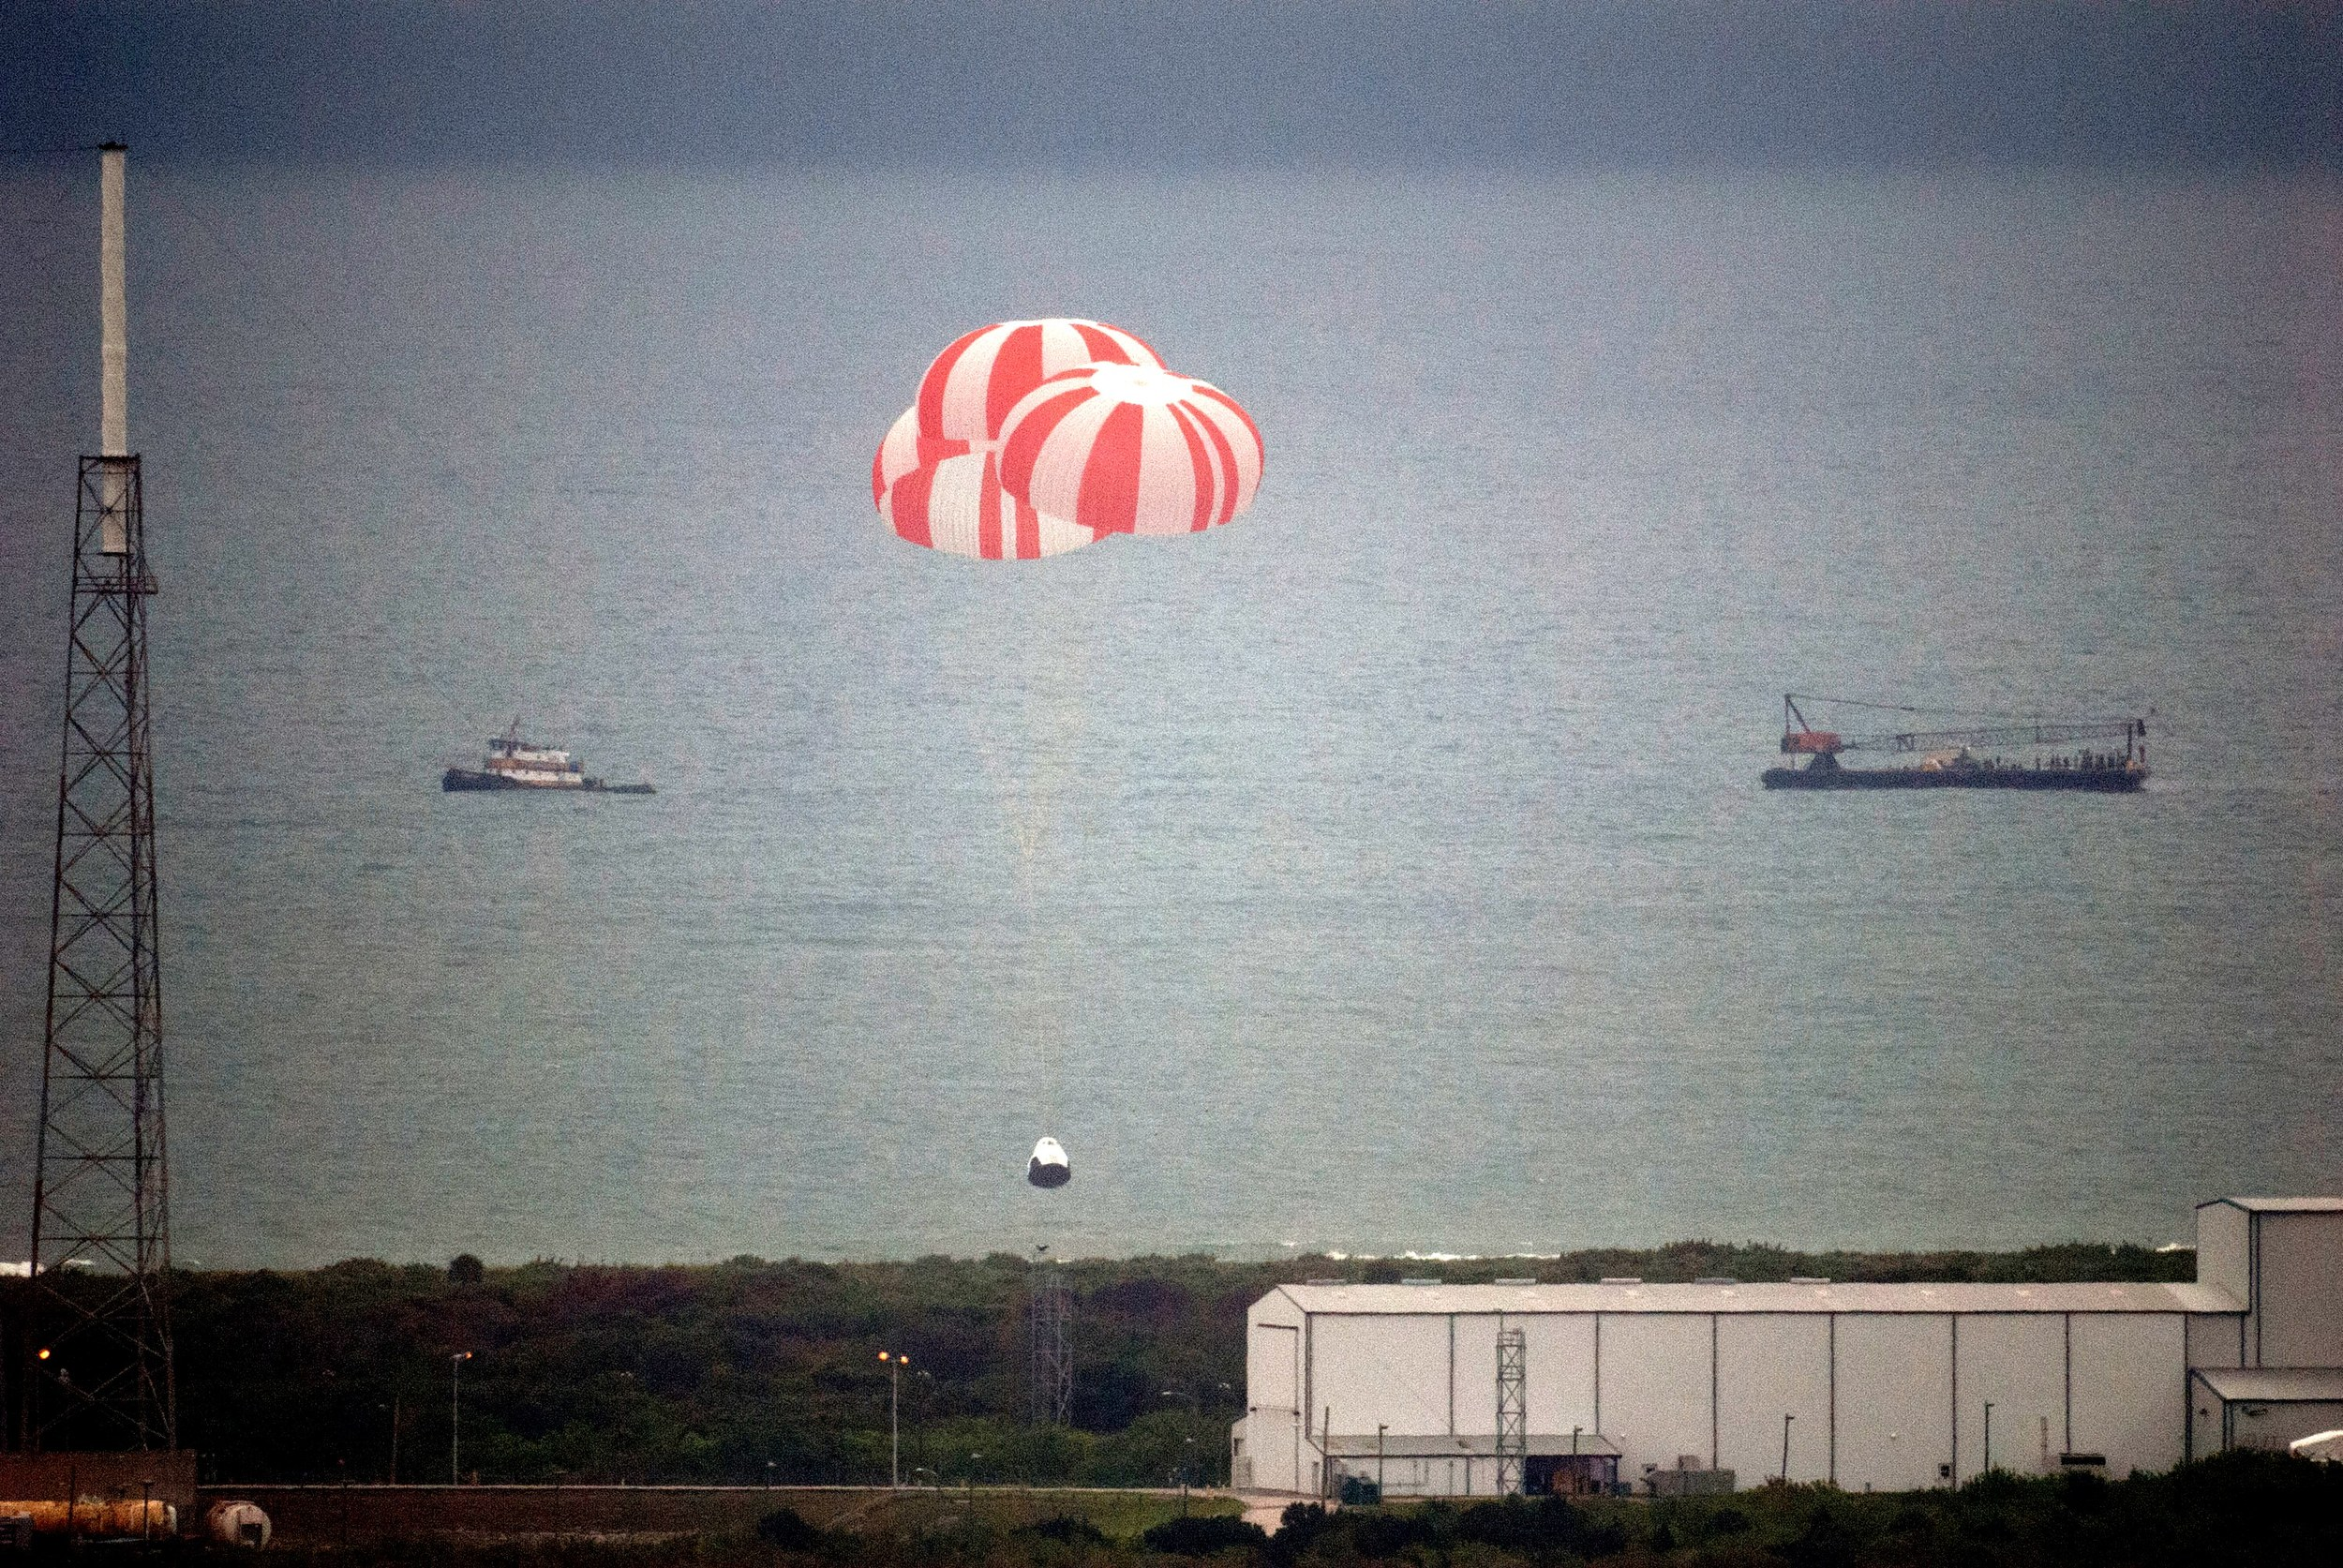 The Crew Dragon capsule parachutes into the ocean after the Pad Abort test. Photo Credit: SpaceX